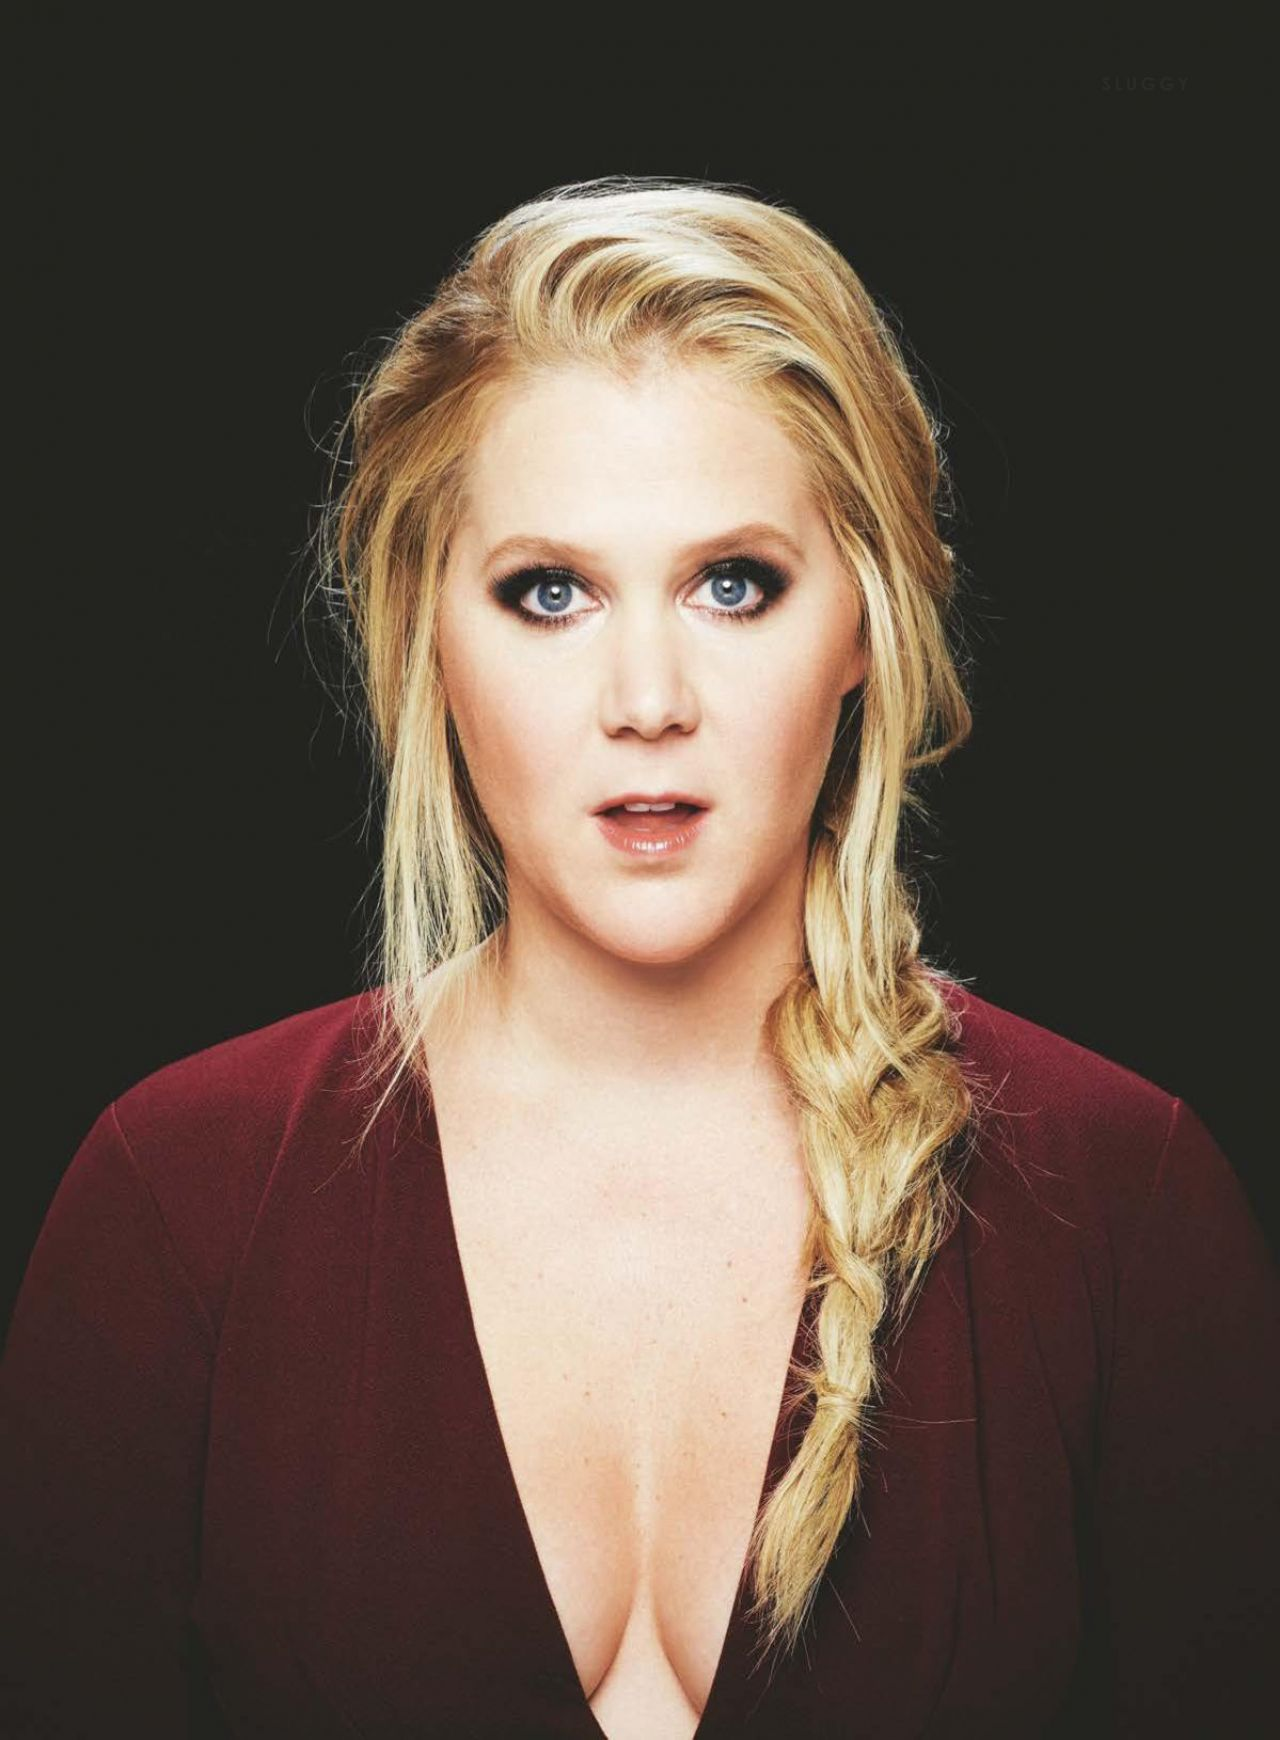 amy schumer - photo #2